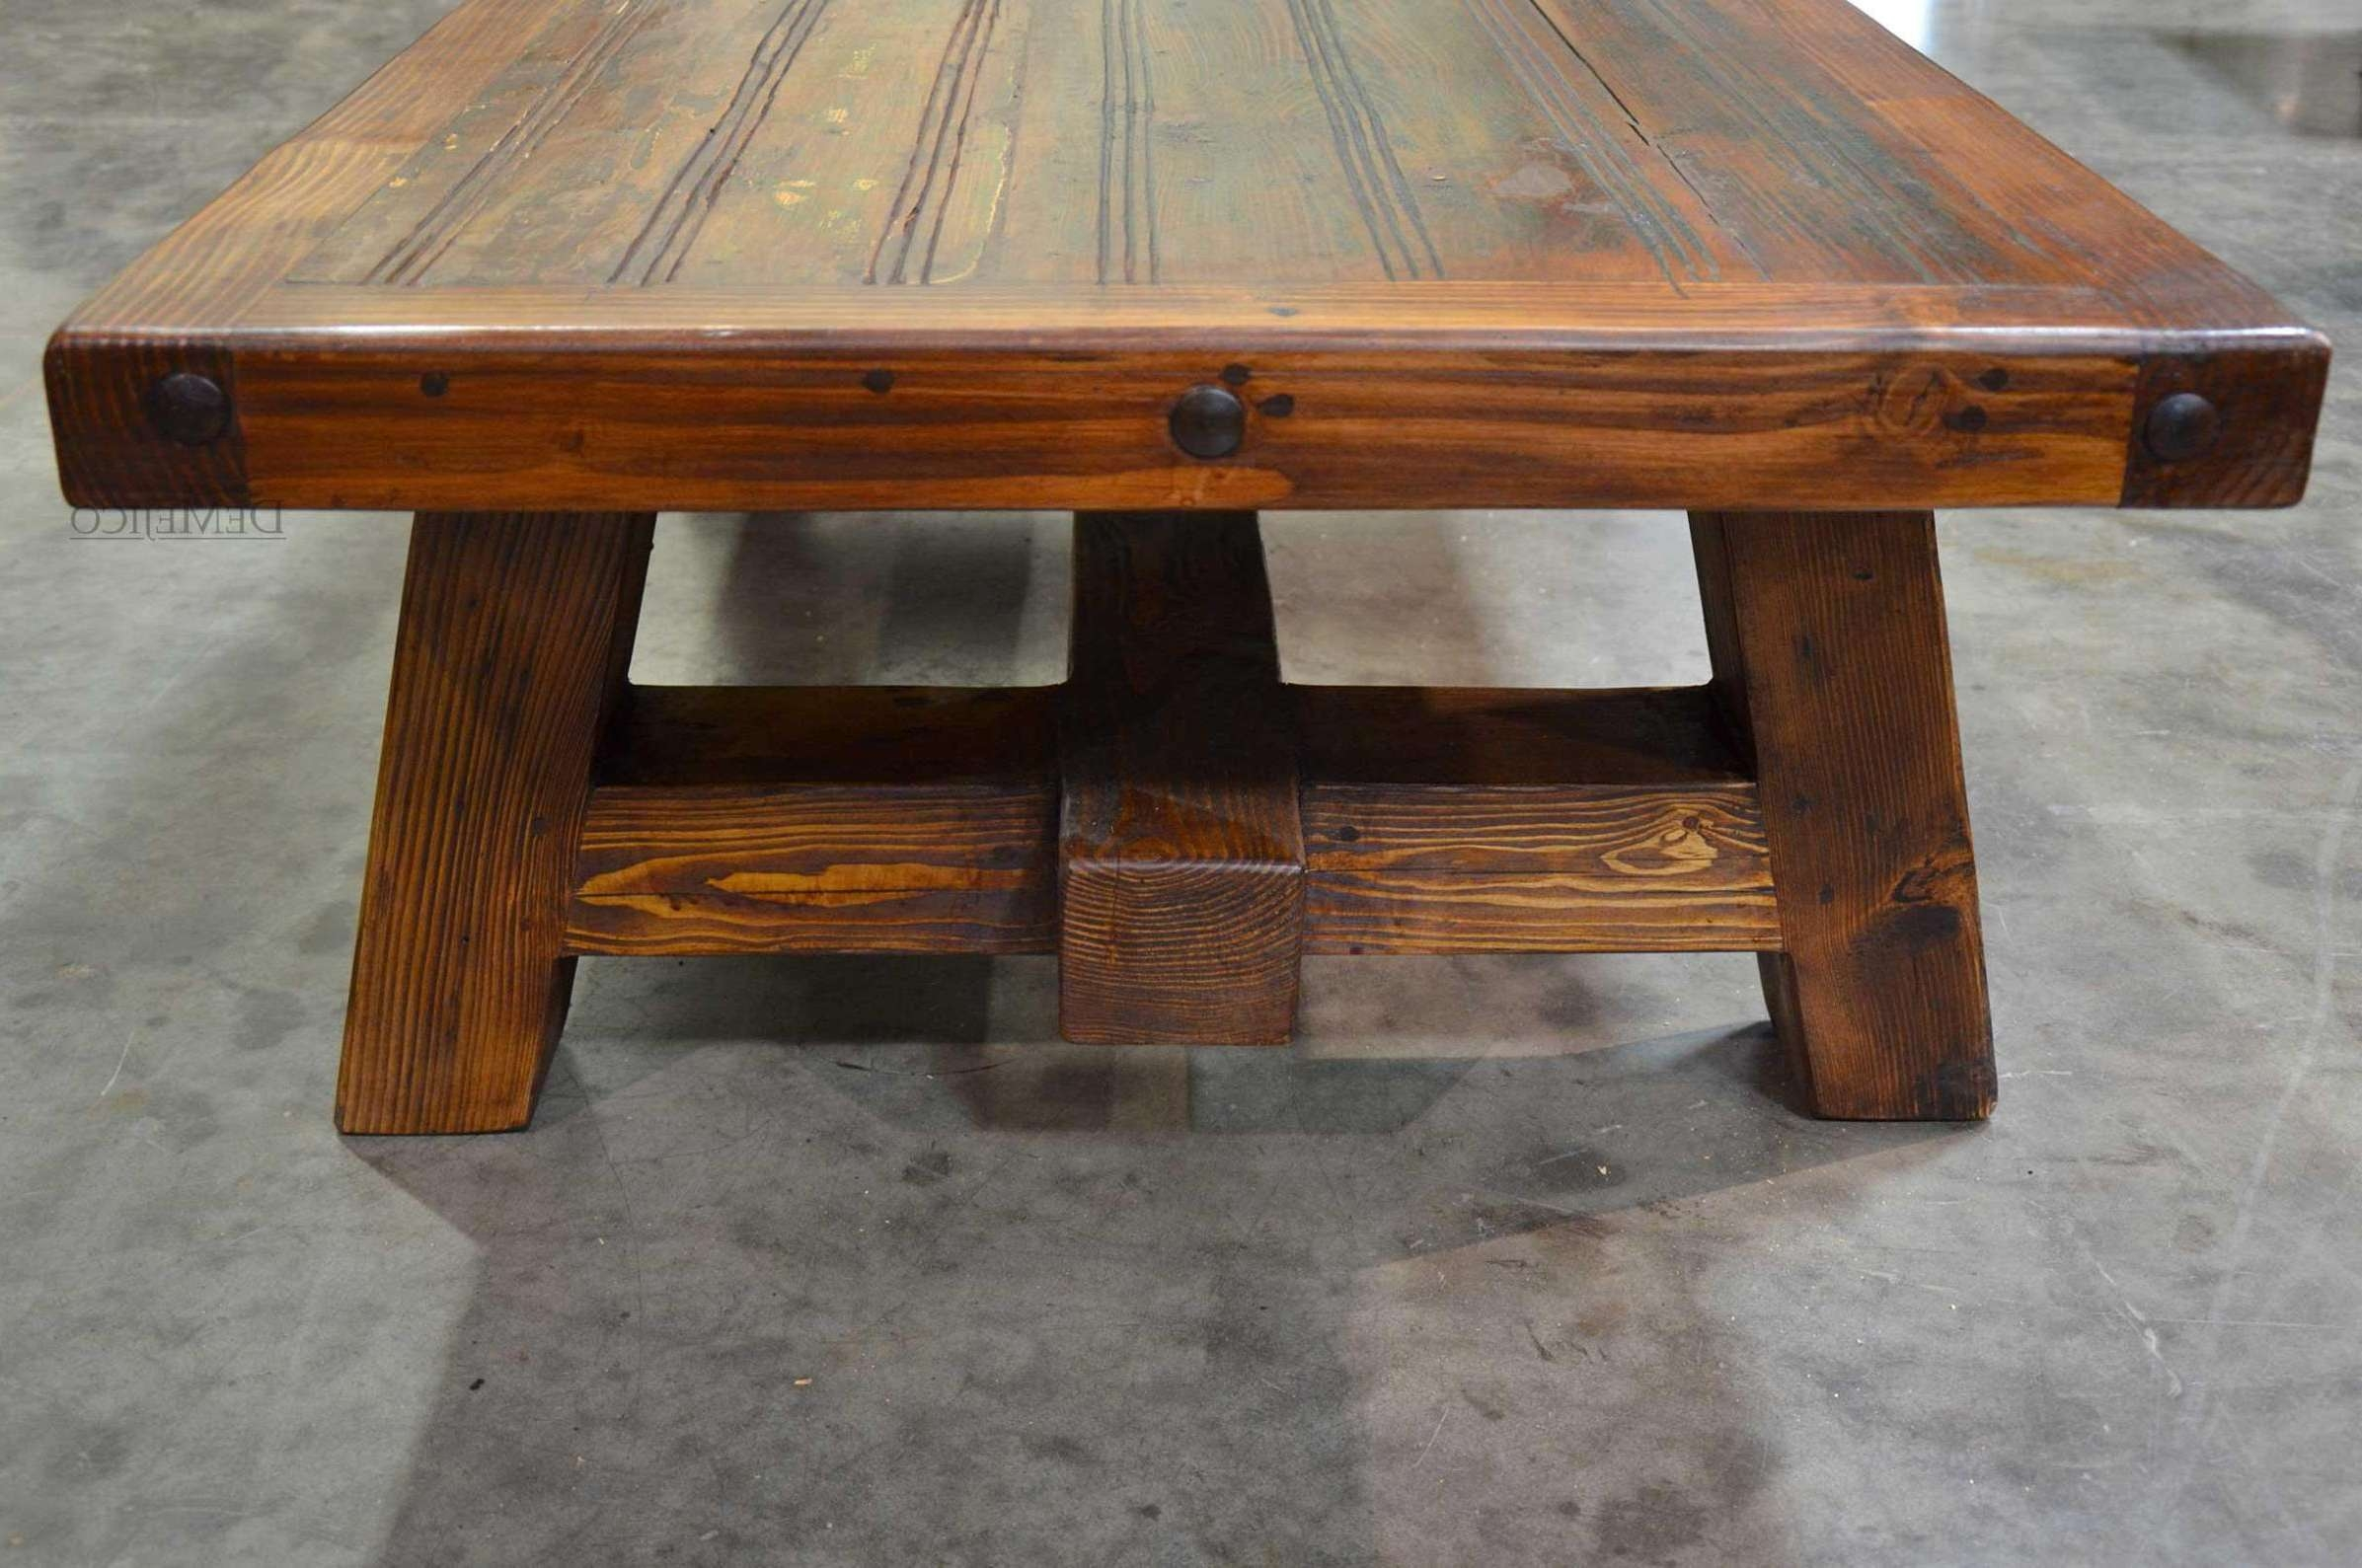 Well Known Reclaimed Wood Coffee Tables With Regard To Coffee Tables : Reclaimed Wood Square Coffee Table Rustic With (View 3 of 20)